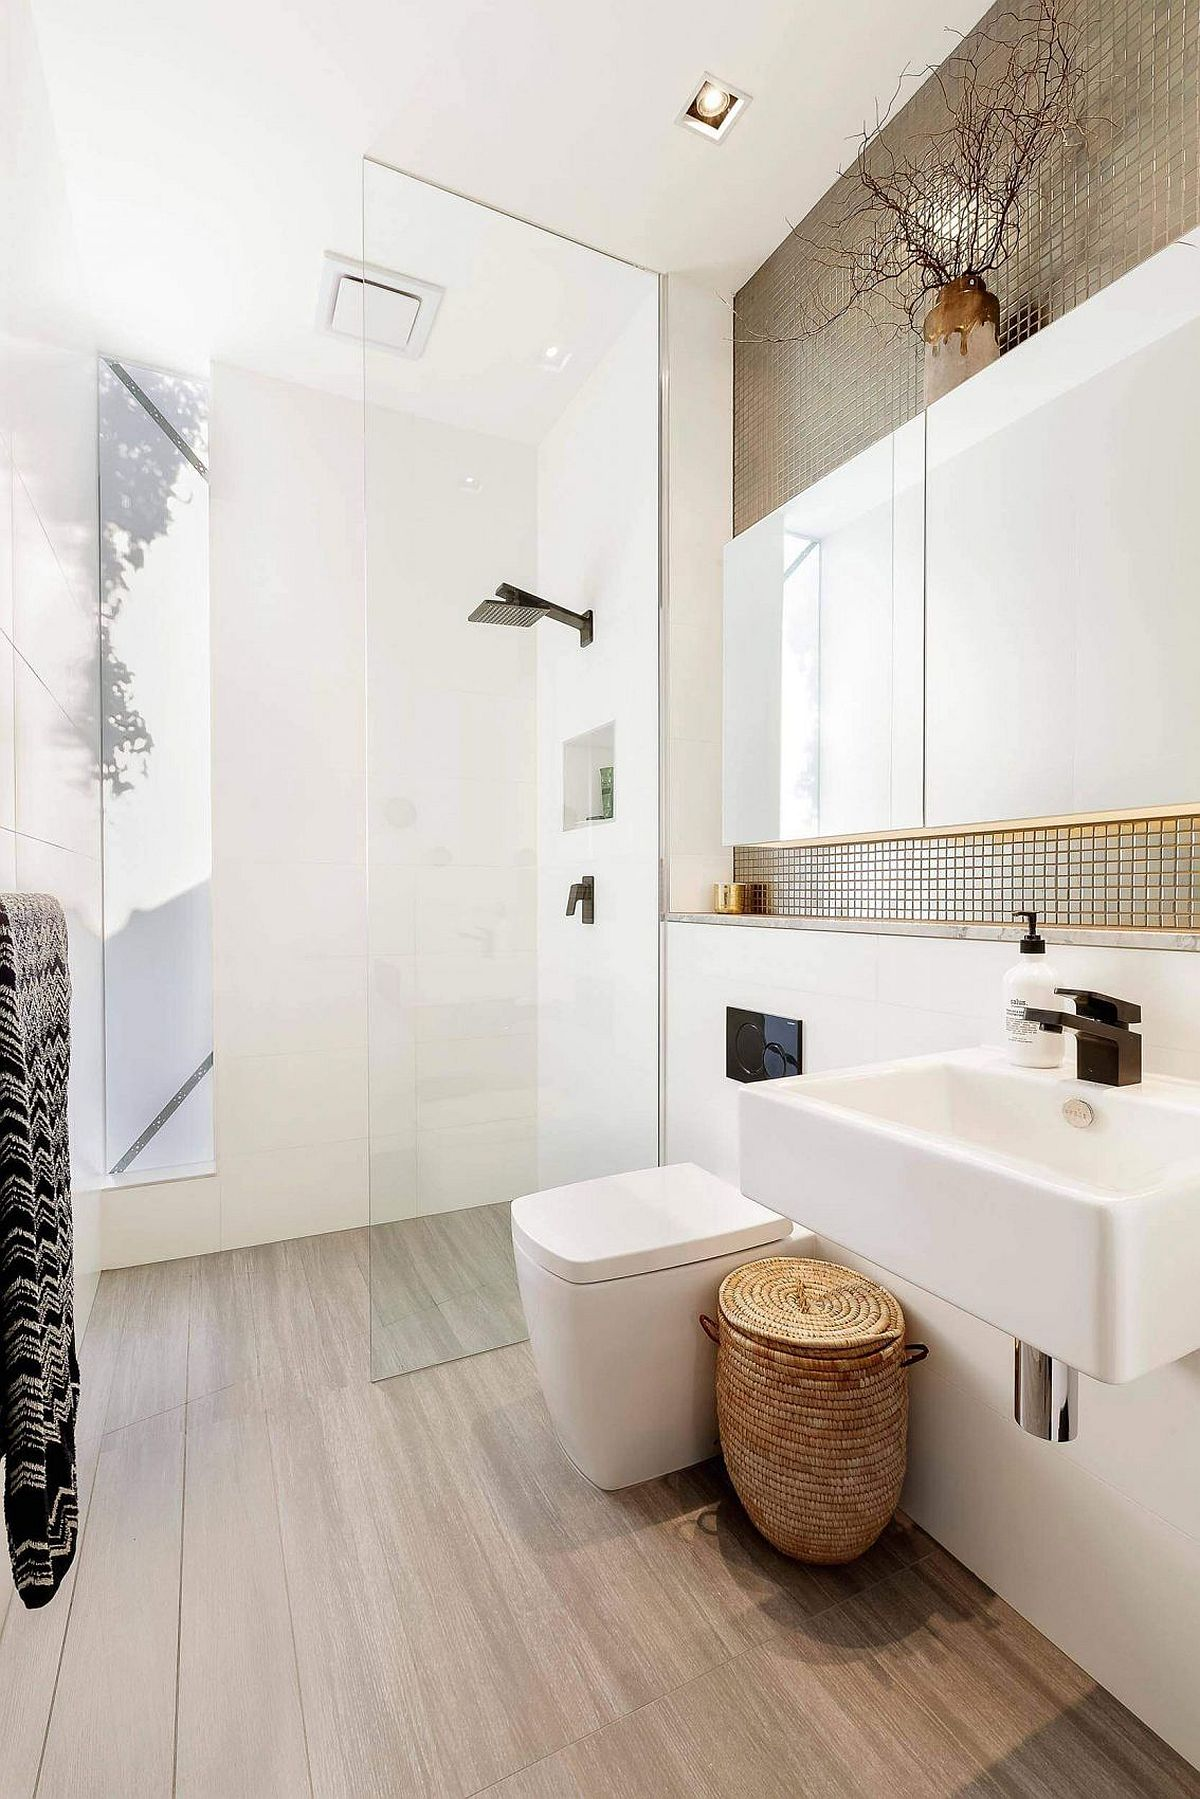 Corner shower area of the contemporary bathroom